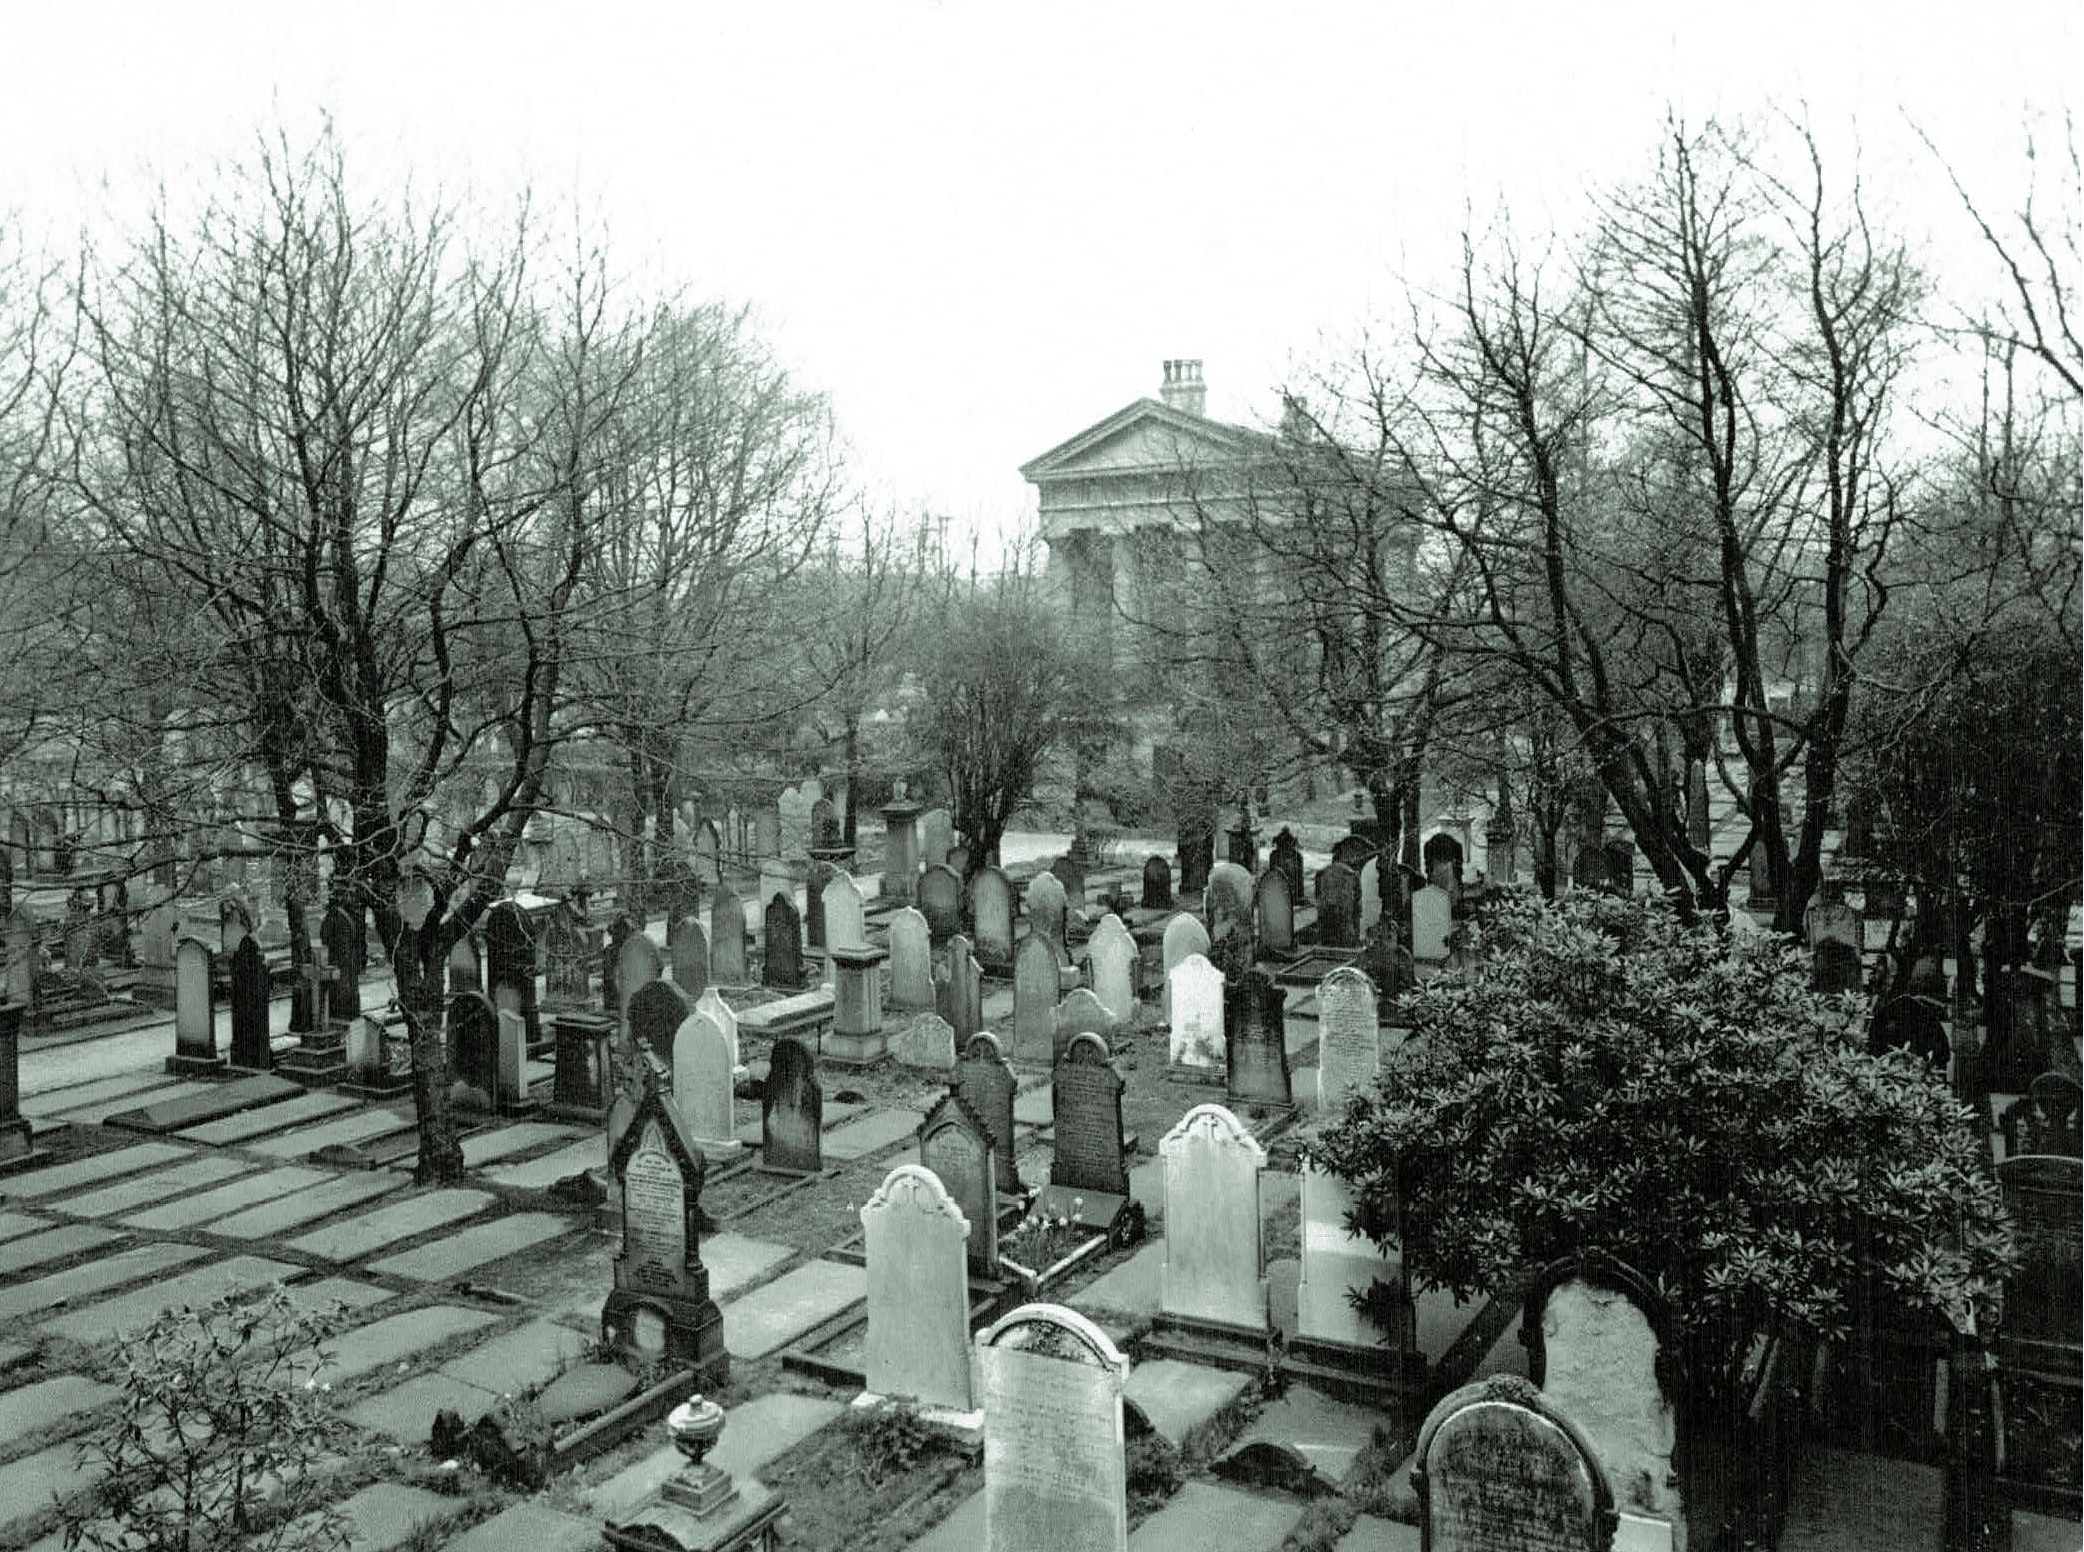 Key Hill cemetery chapel, mid-20th century (kindly donated to the project by Peter Vickers)